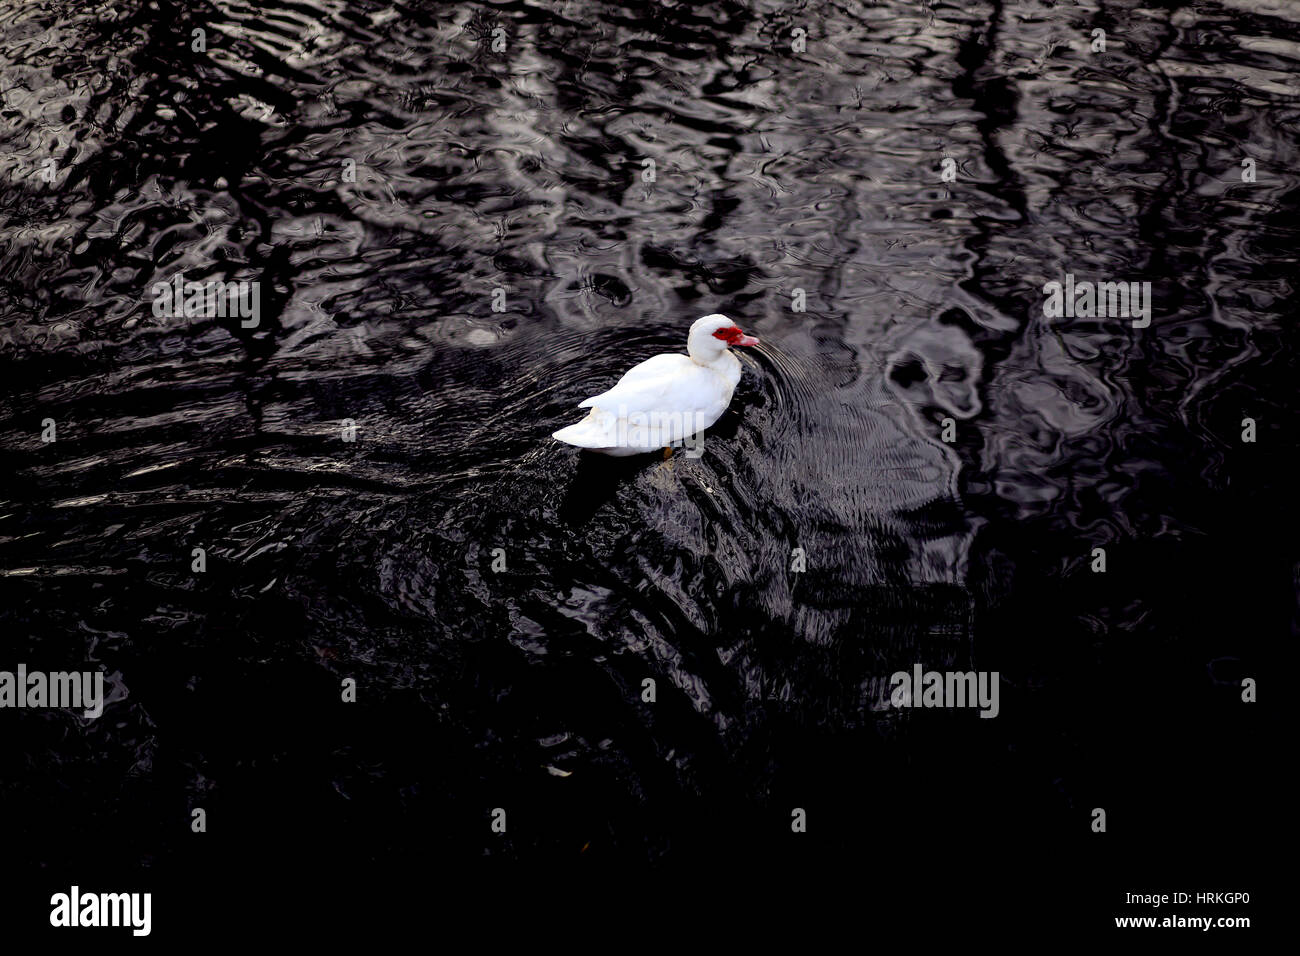 American Pekin Duck swims in the black water of a pond Stock Photo